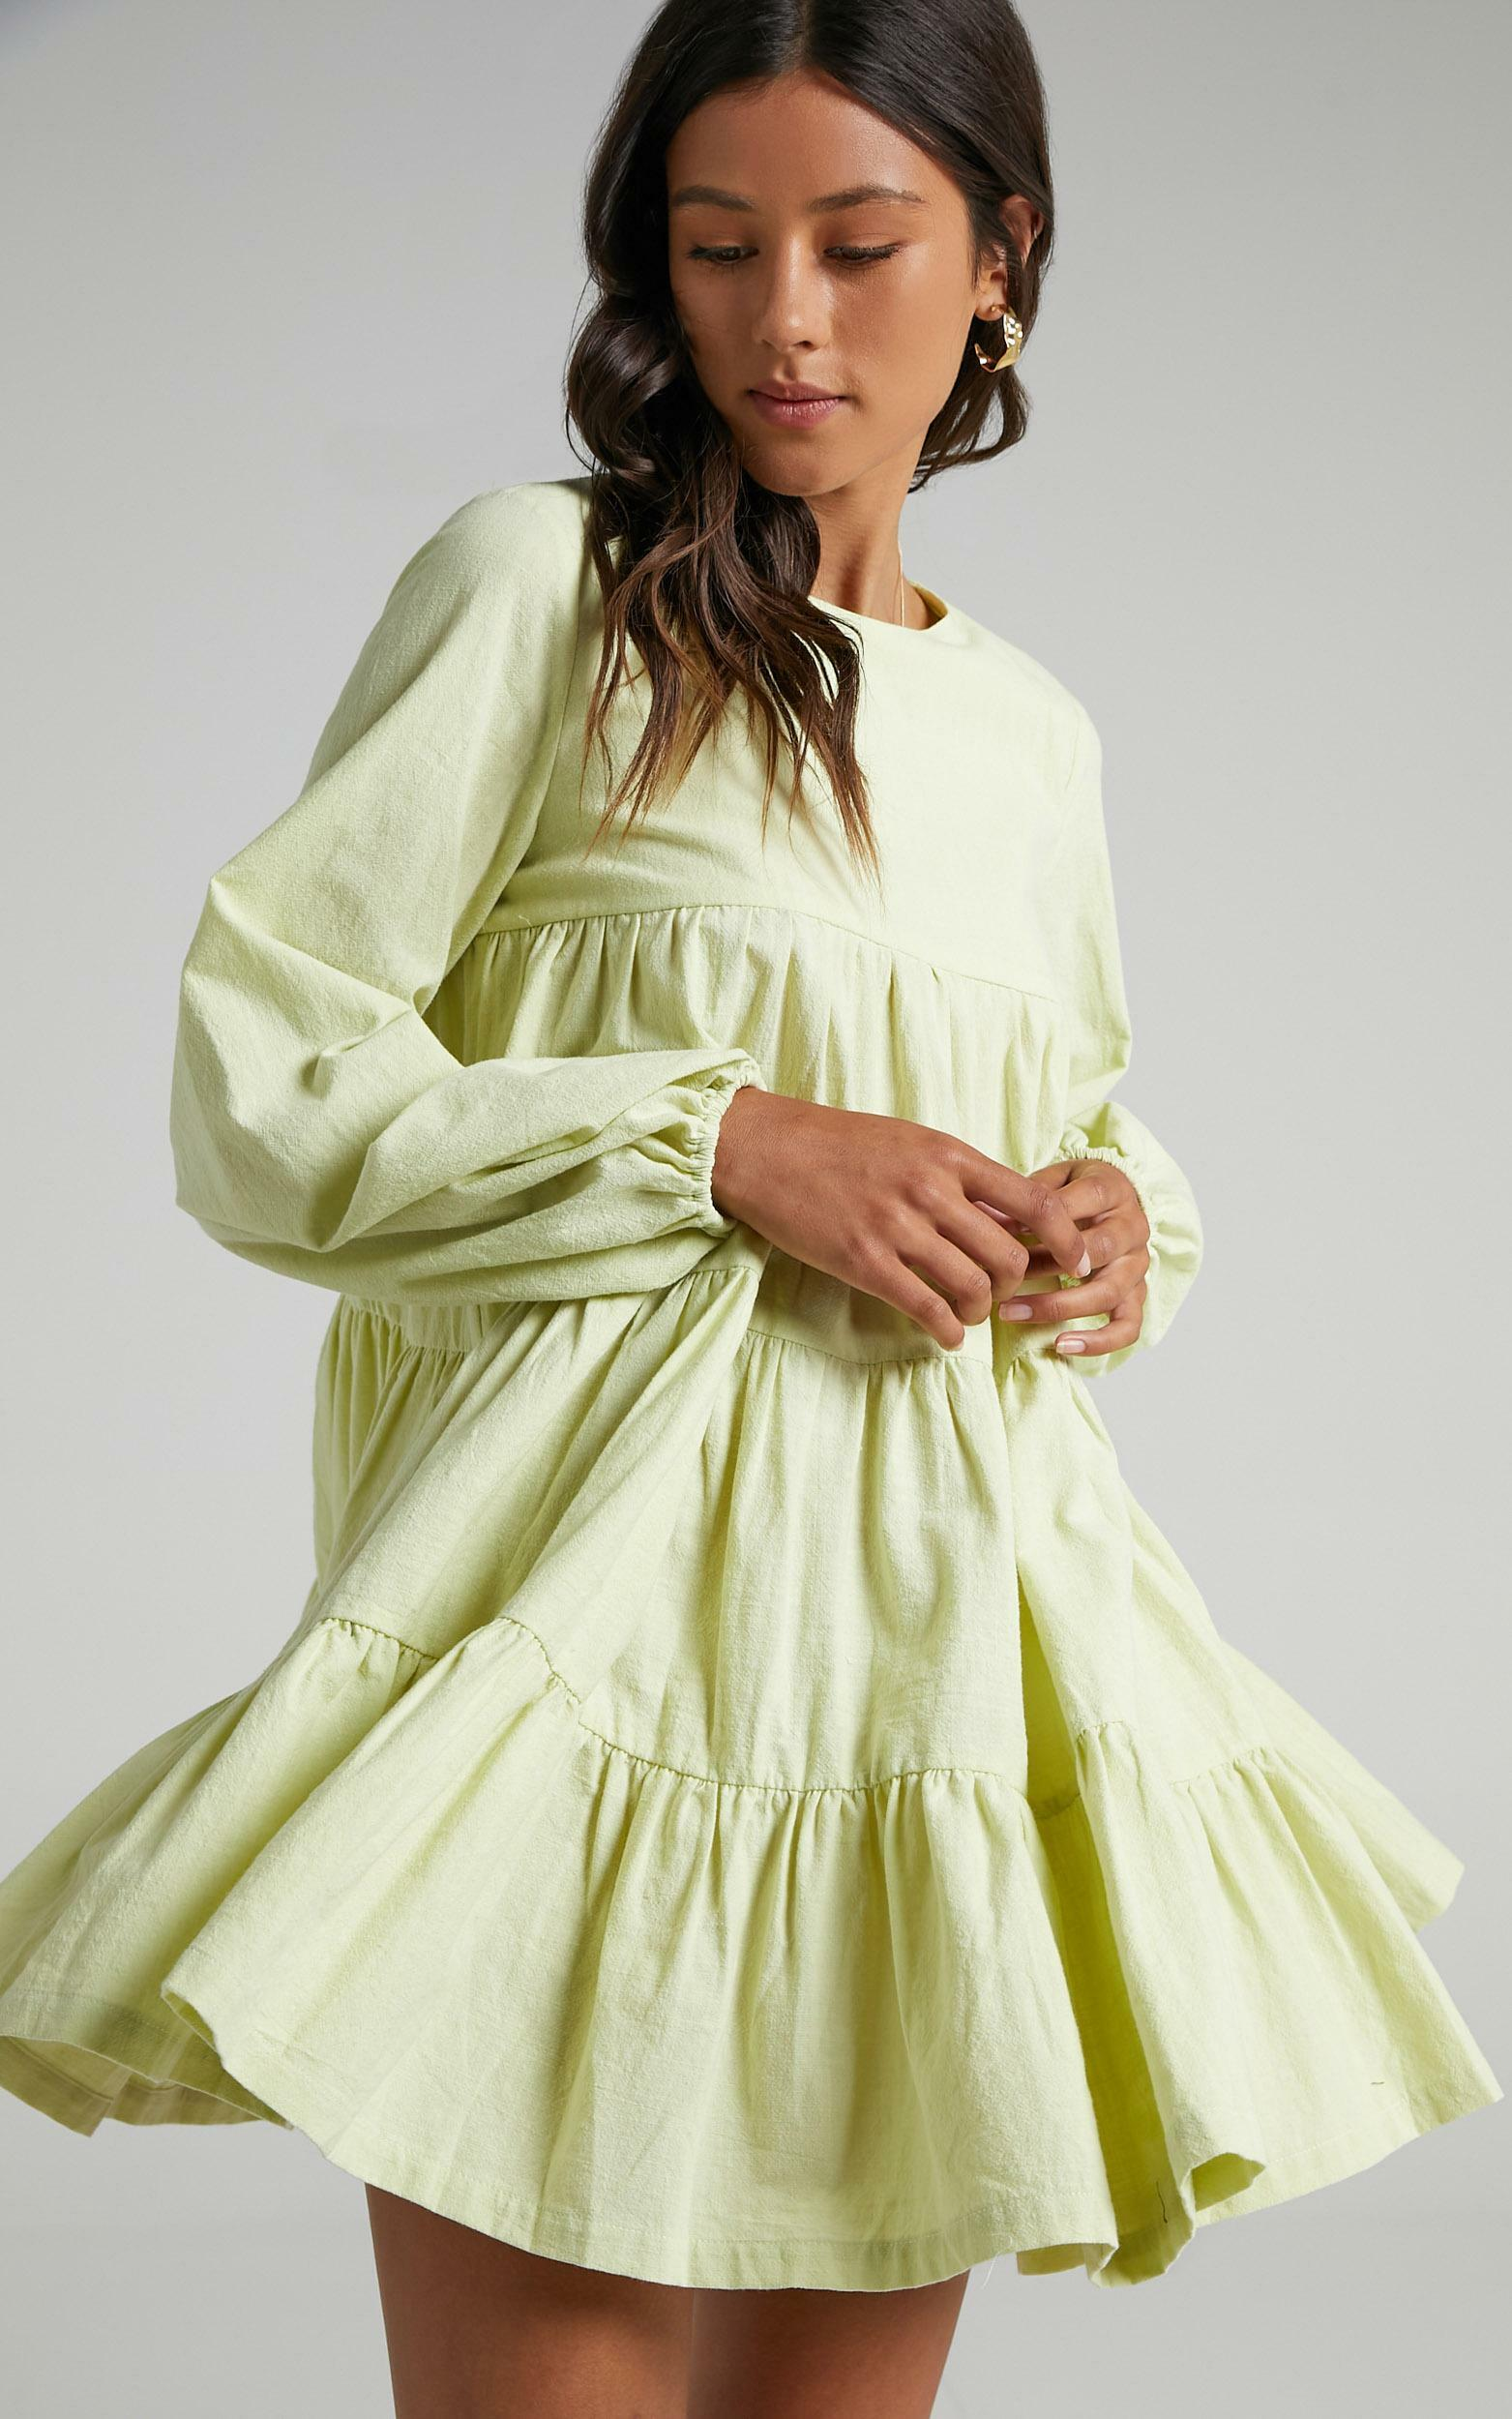 Toulouse Dress in Citrus Green - 06, GRN2, hi-res image number null